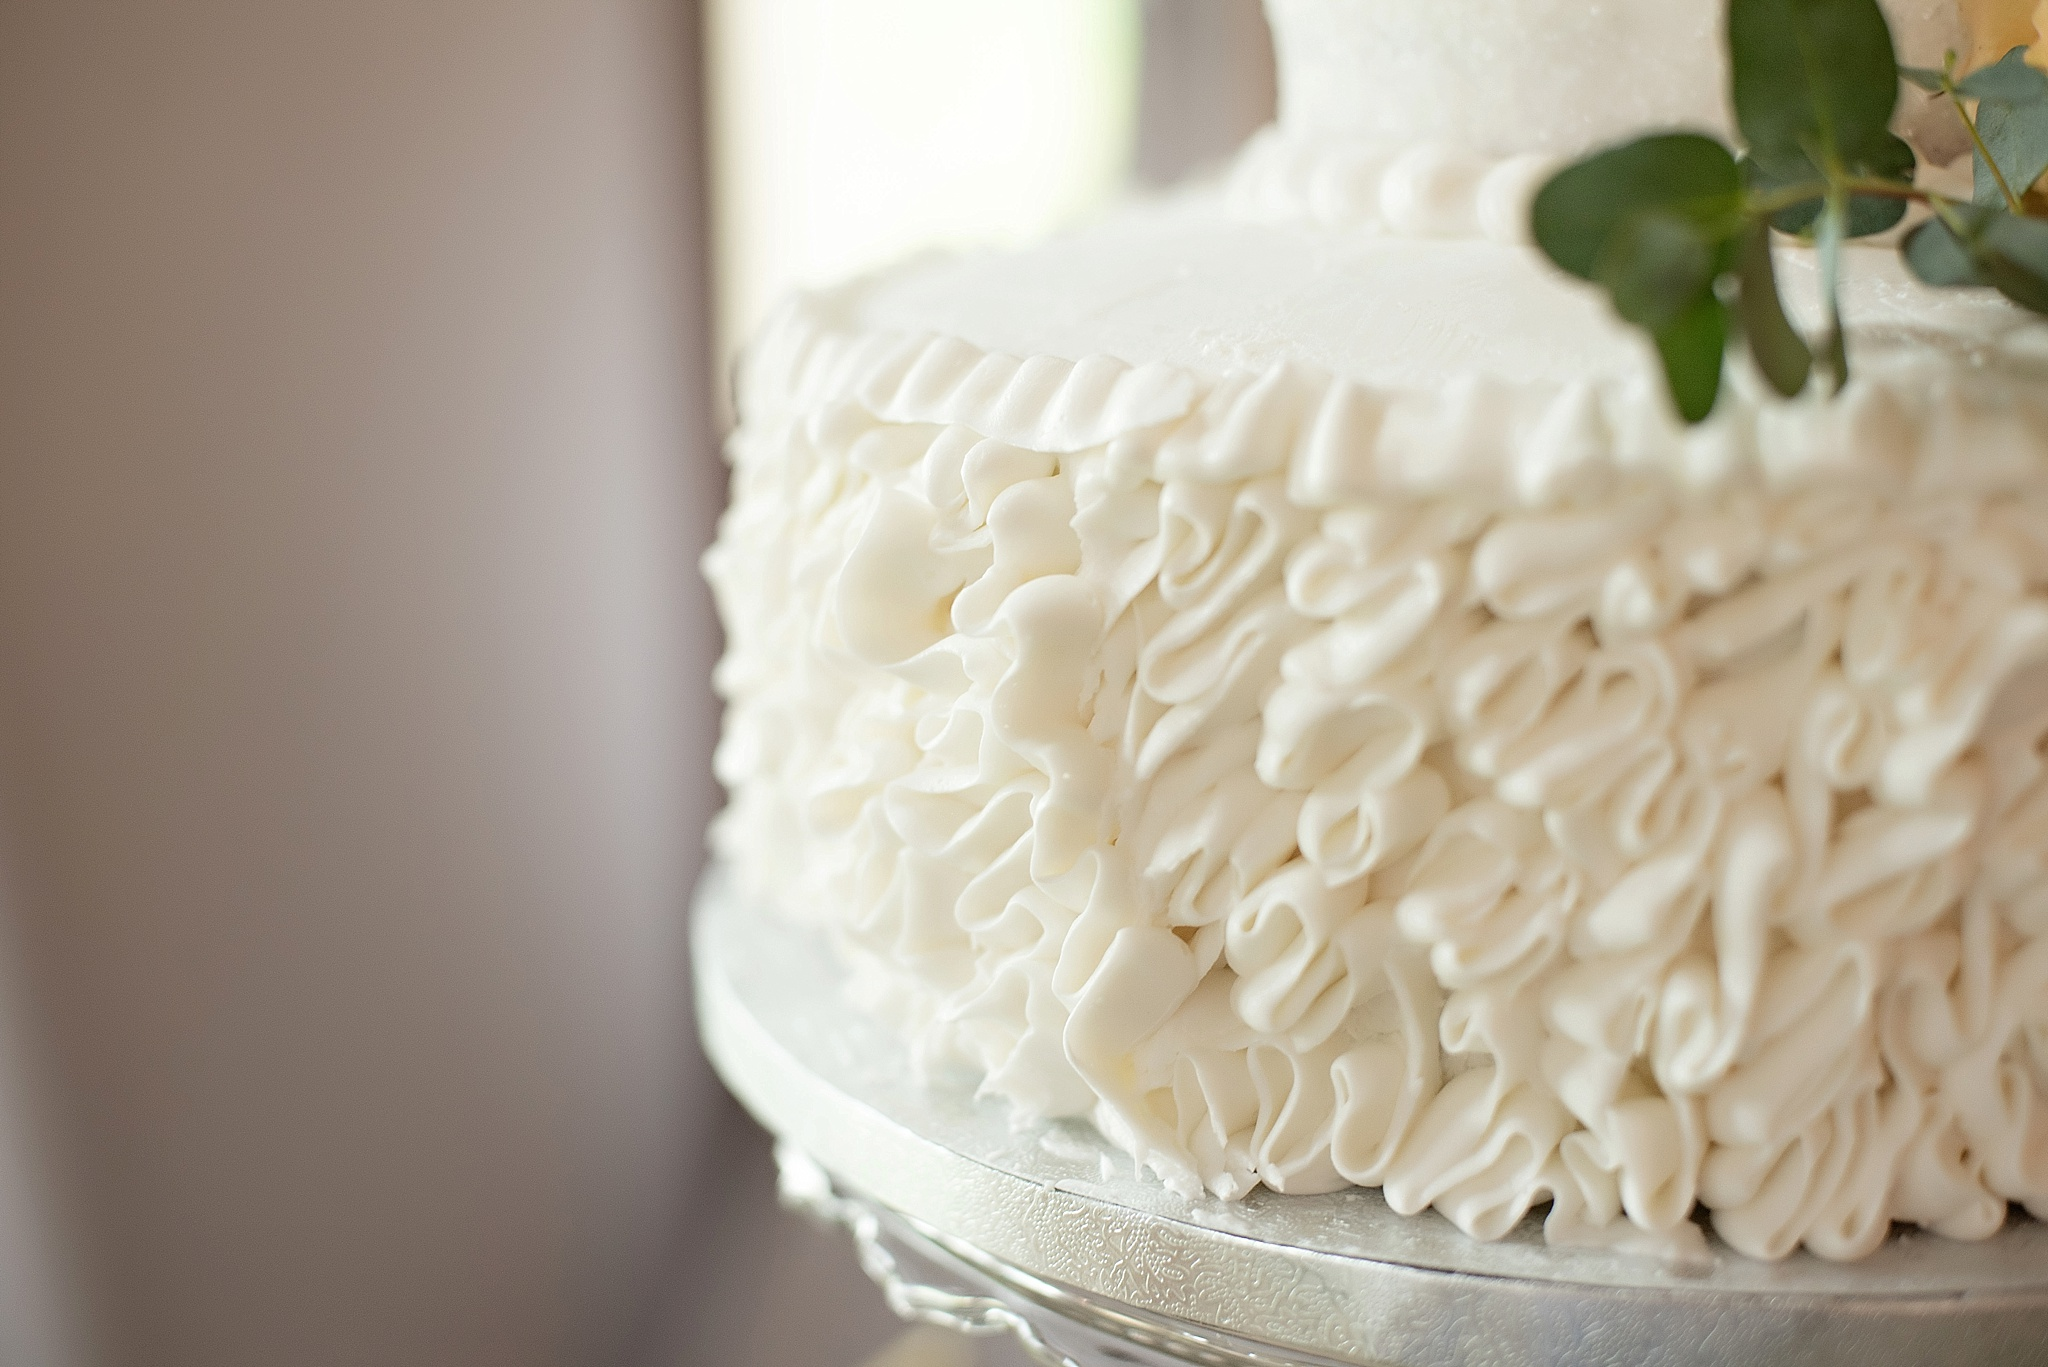 ruffle frosting on white wedding cake